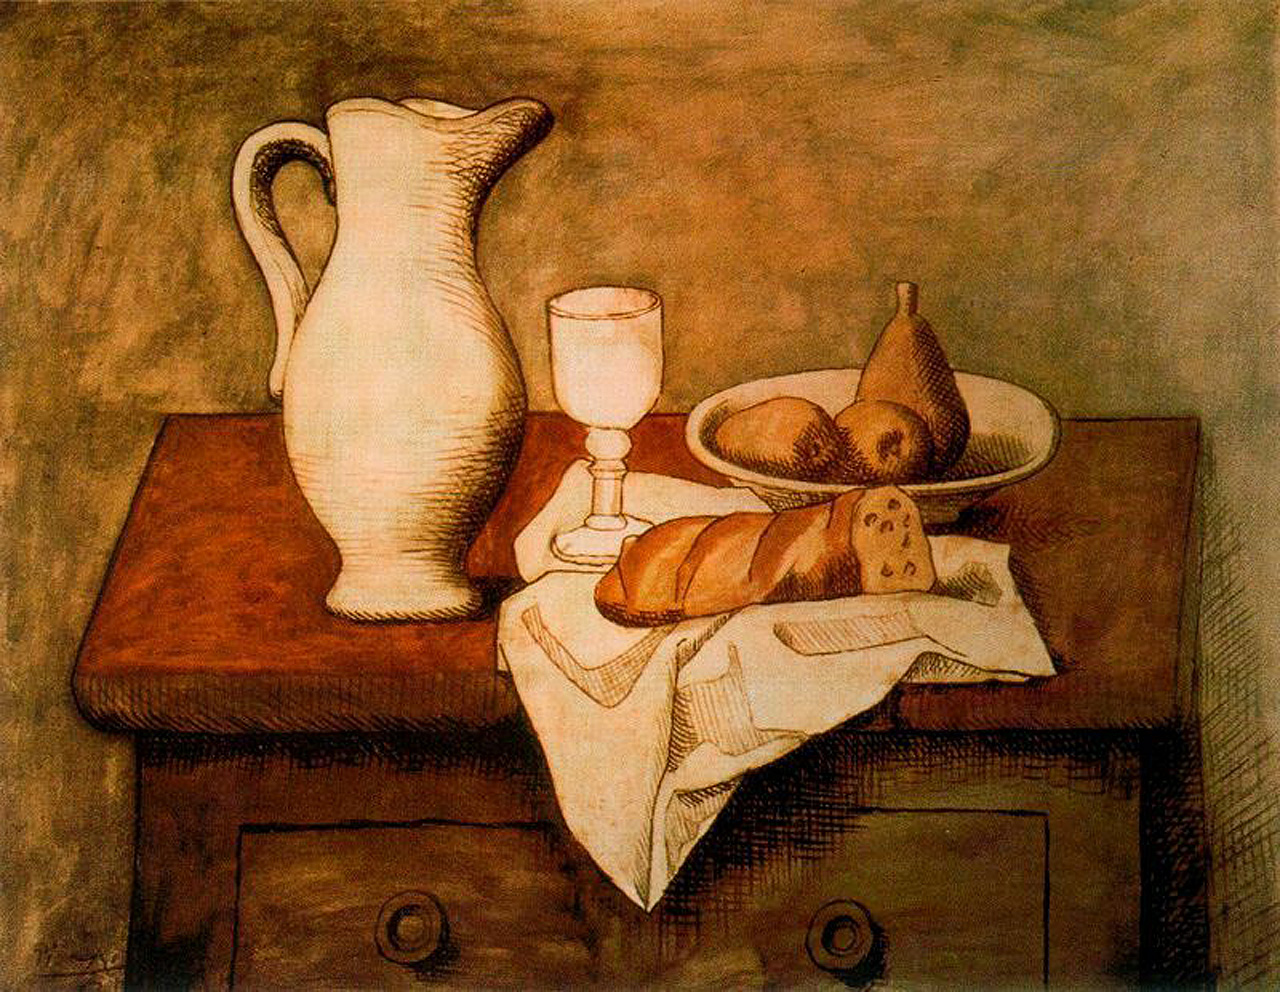 Still life with jug and bread, 1921